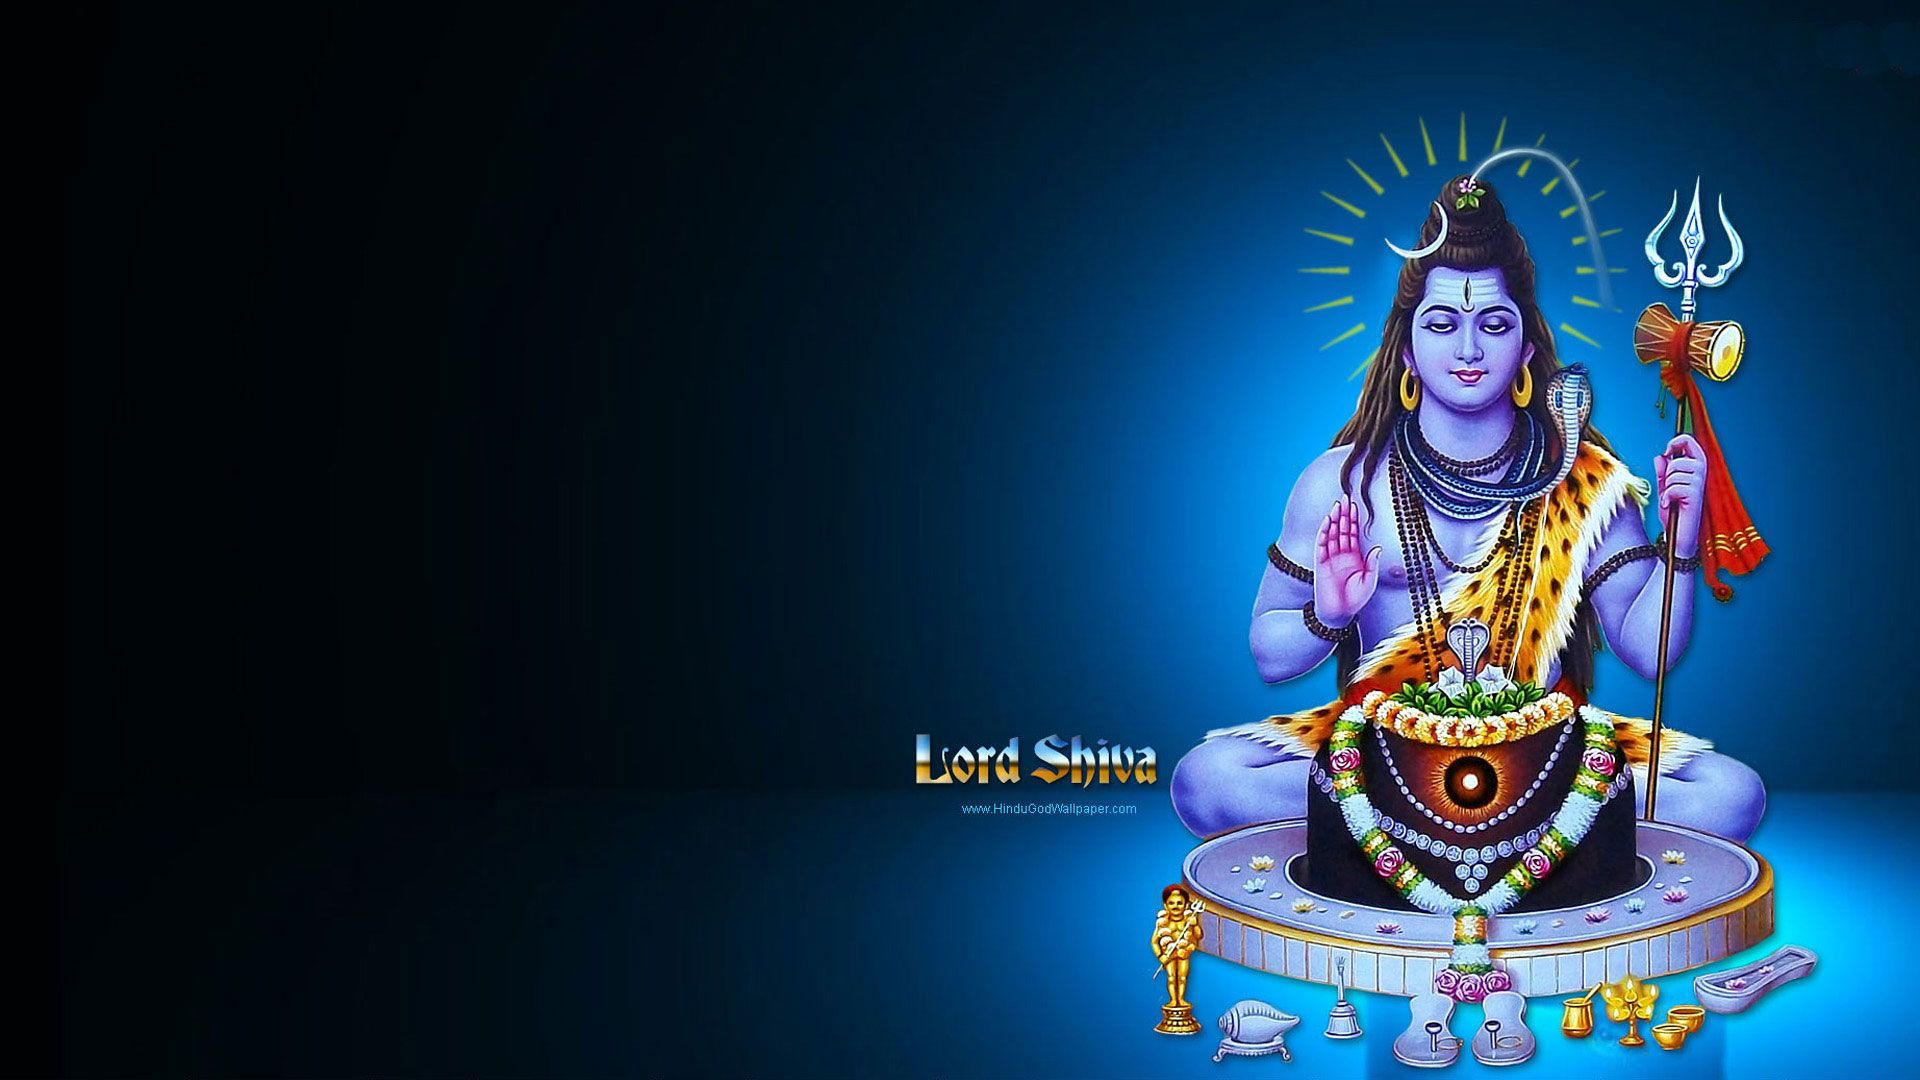 Hd Pics Photos Gods Lord Shiva Mahadev New Attractive Desktop Background Wallpaper Shiva Wallpaper Lord Shiva Hd Images Shiva Images Hd